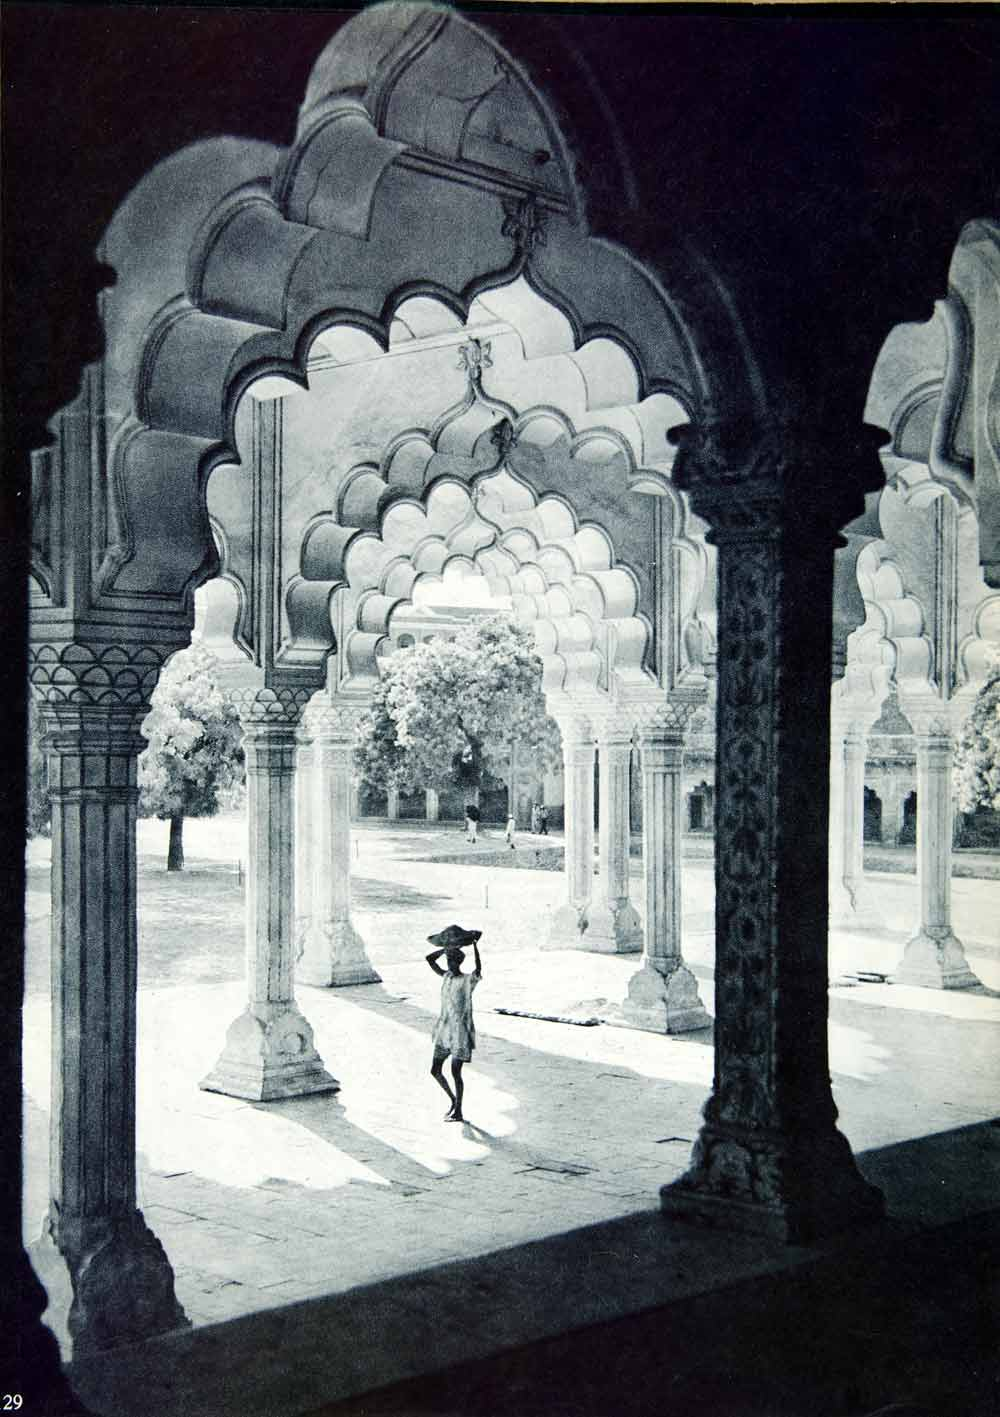 1955 Rotogravure Diwaniam Red Fort Agra India Colonnade Shah Jahan XGRC8